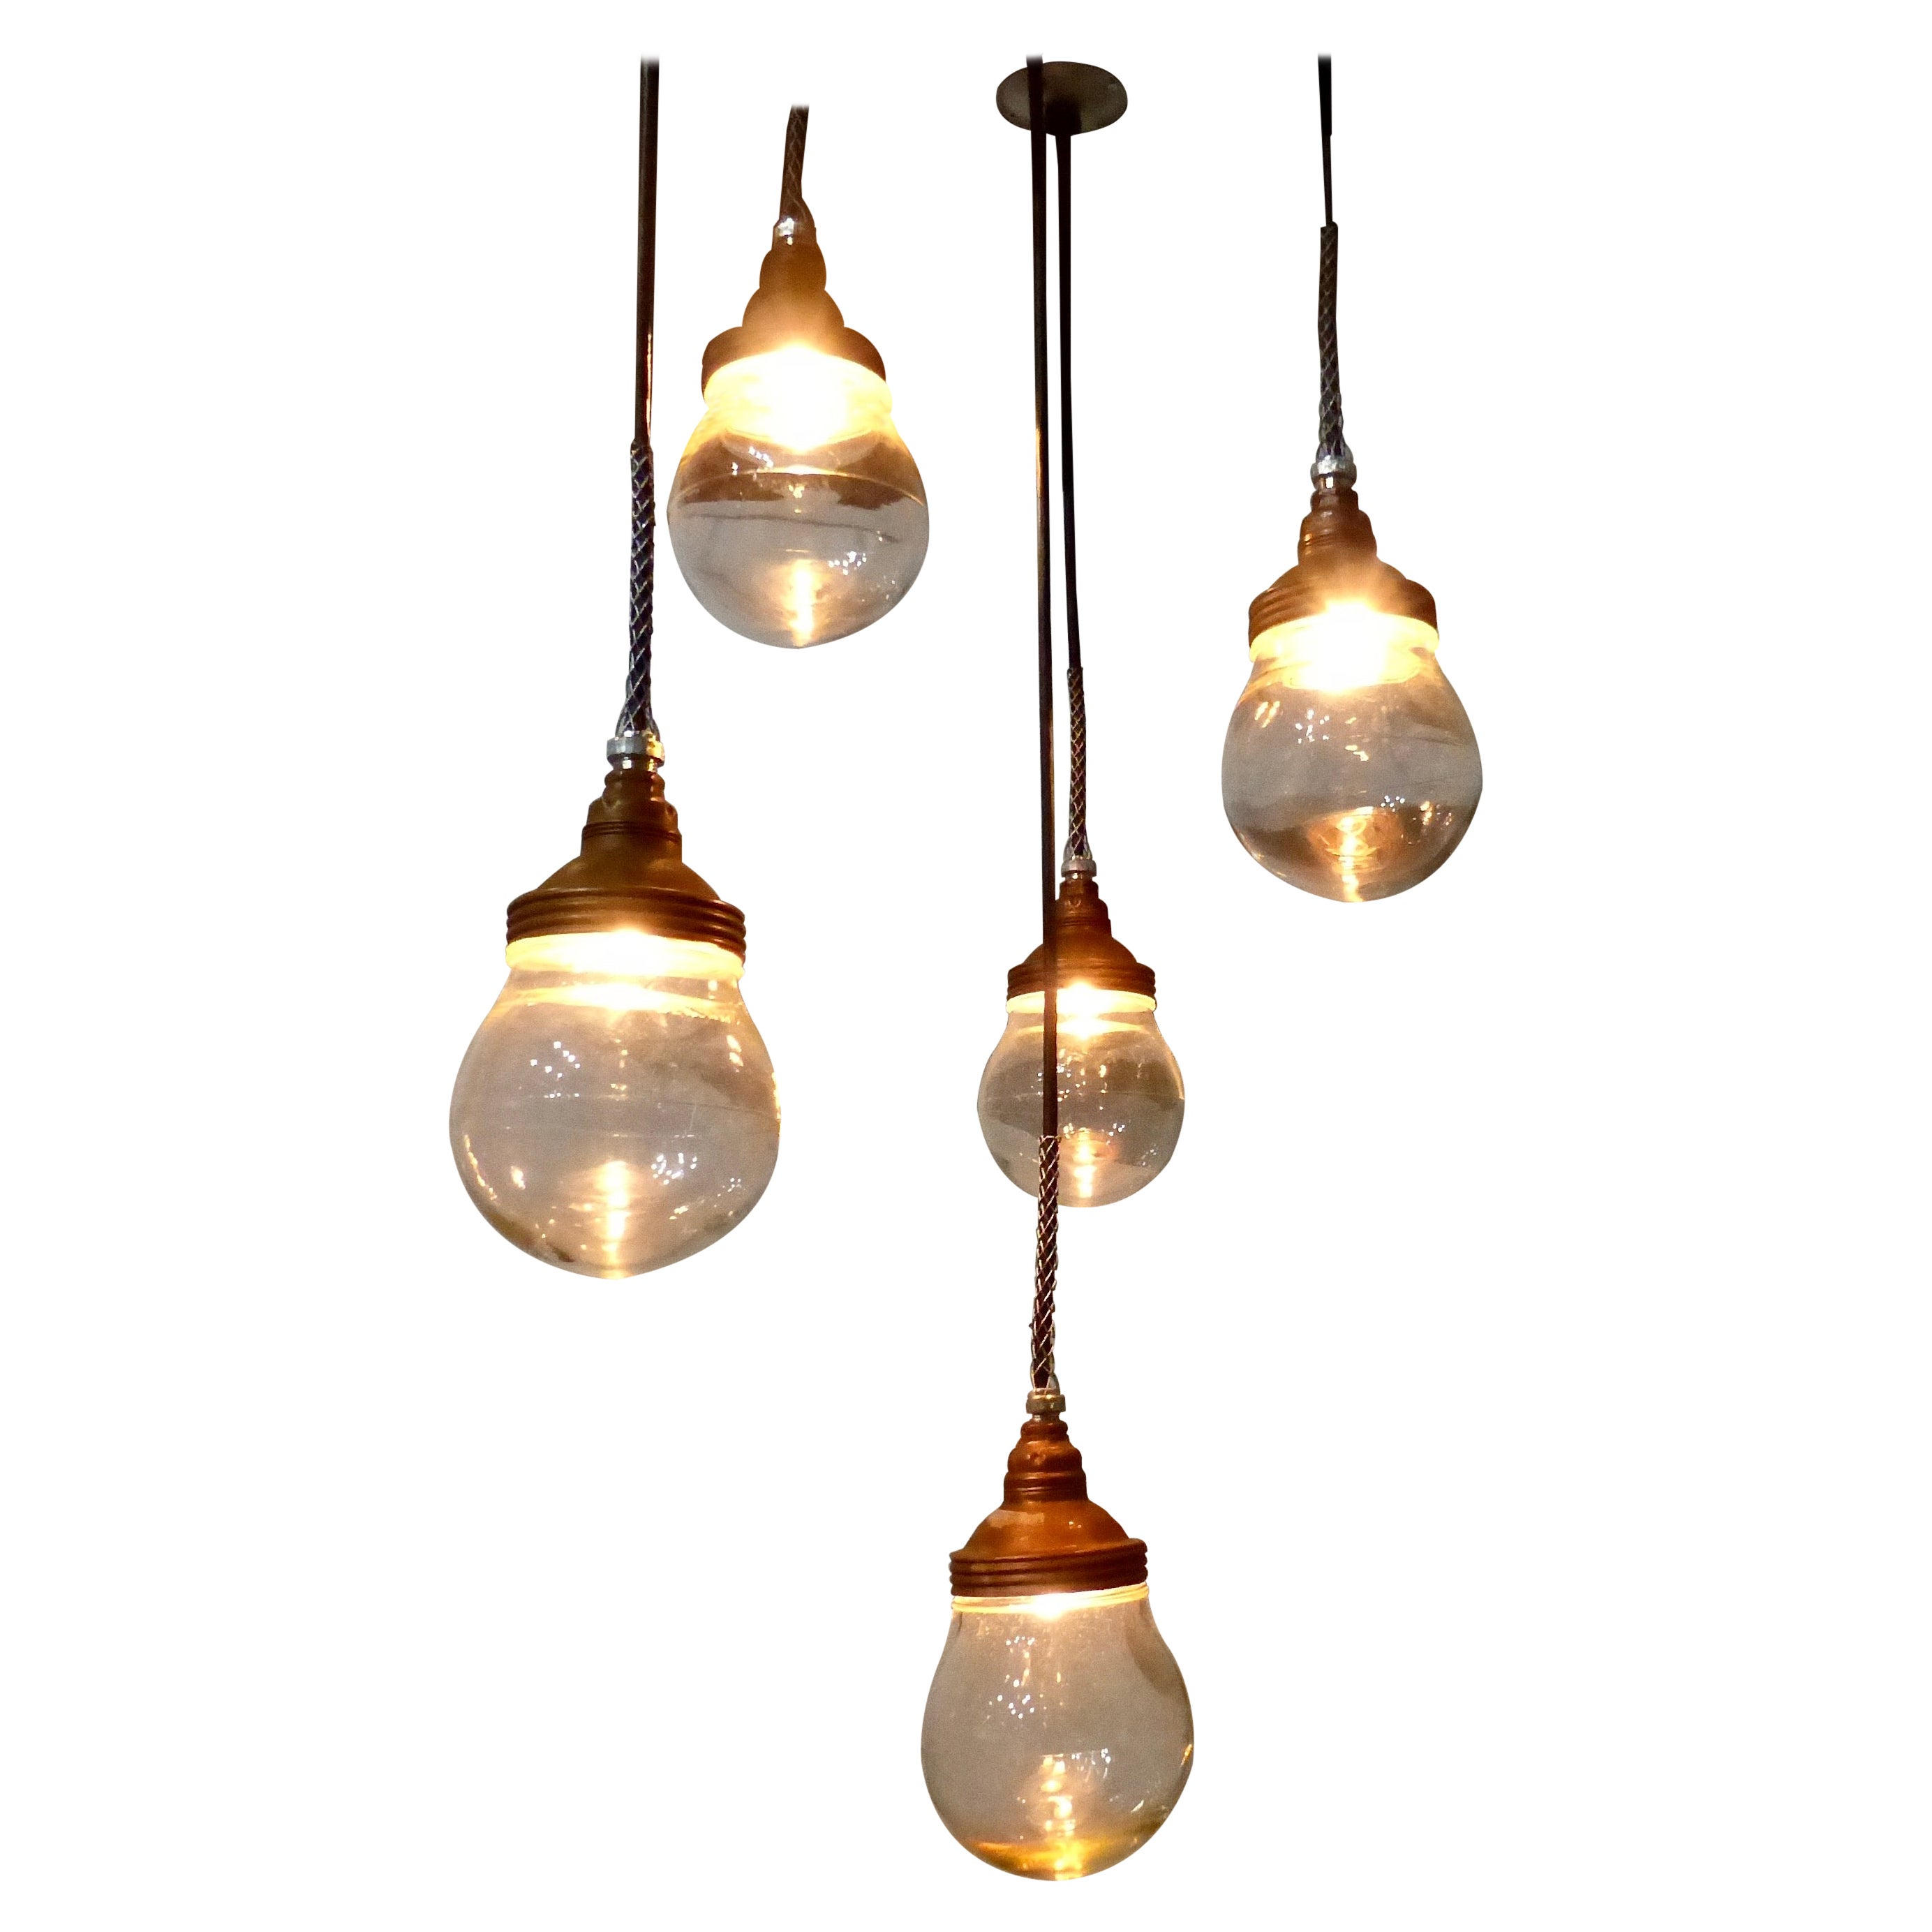 Copper Benjamin Pendant Lights, circa 1920